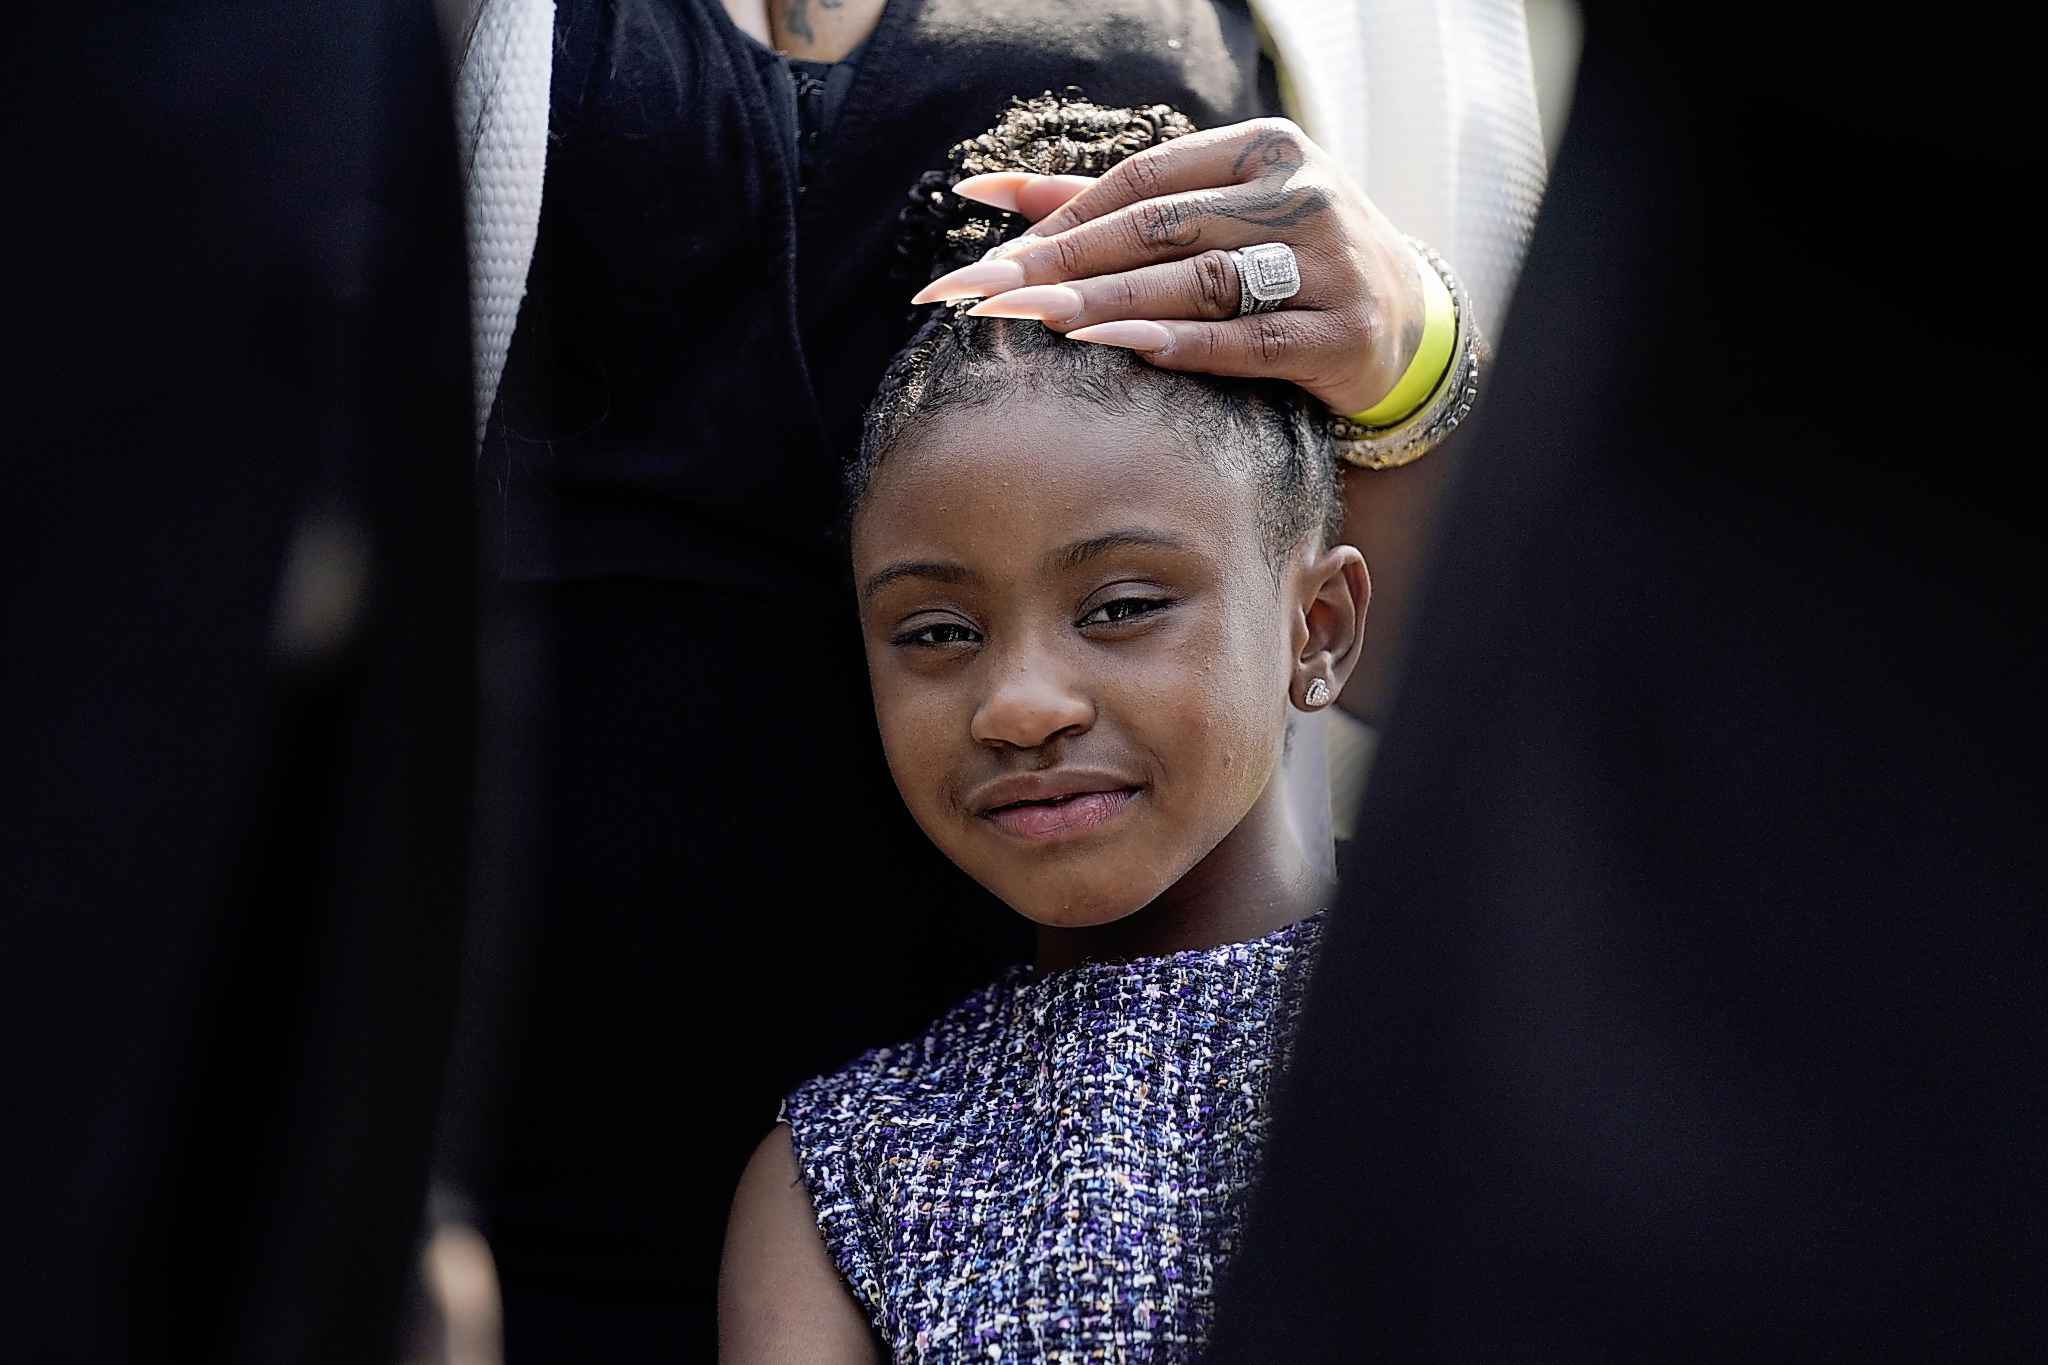 Gianna Floyd, the daughter of George Floyd, listens as family members speak to reporters after meeting with President Joe Biden at the White House, Tuesday, May 25, 2021, in Washington. (AP Photo/Evan Vucci)